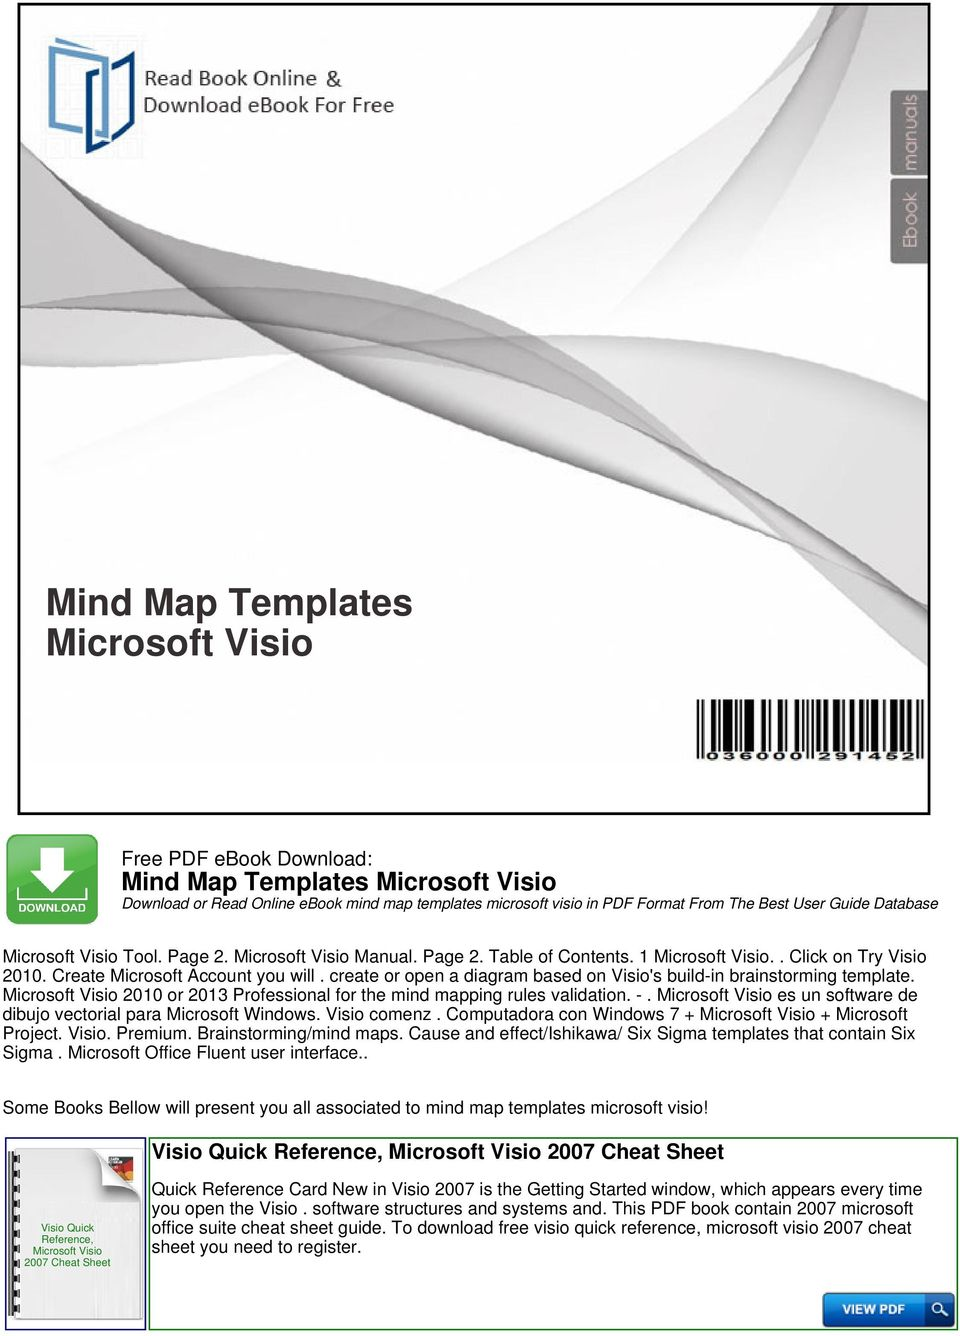 Mind map templates microsoft visio pdf 2010 or 2013 professional for the mind mapping rules validation es un software fandeluxe Image collections